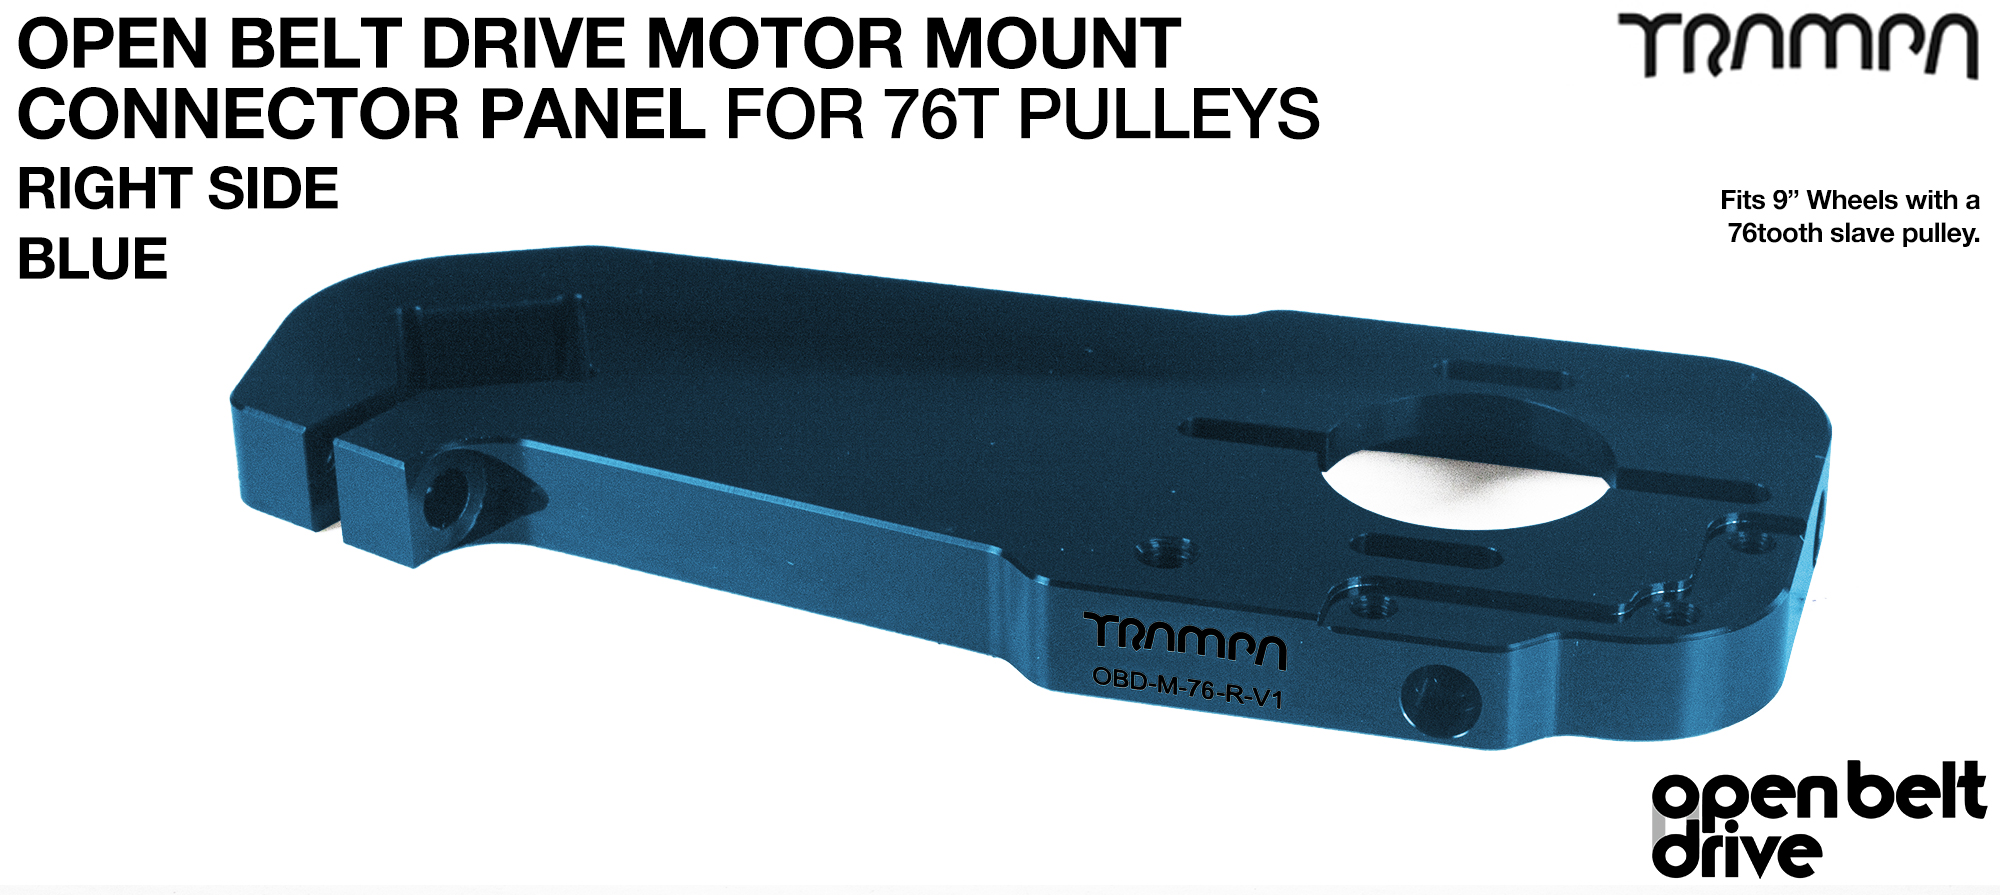 OBD Motor Mount Connector Panel for 76 tooth Pulleys - GOOFY - BLUE